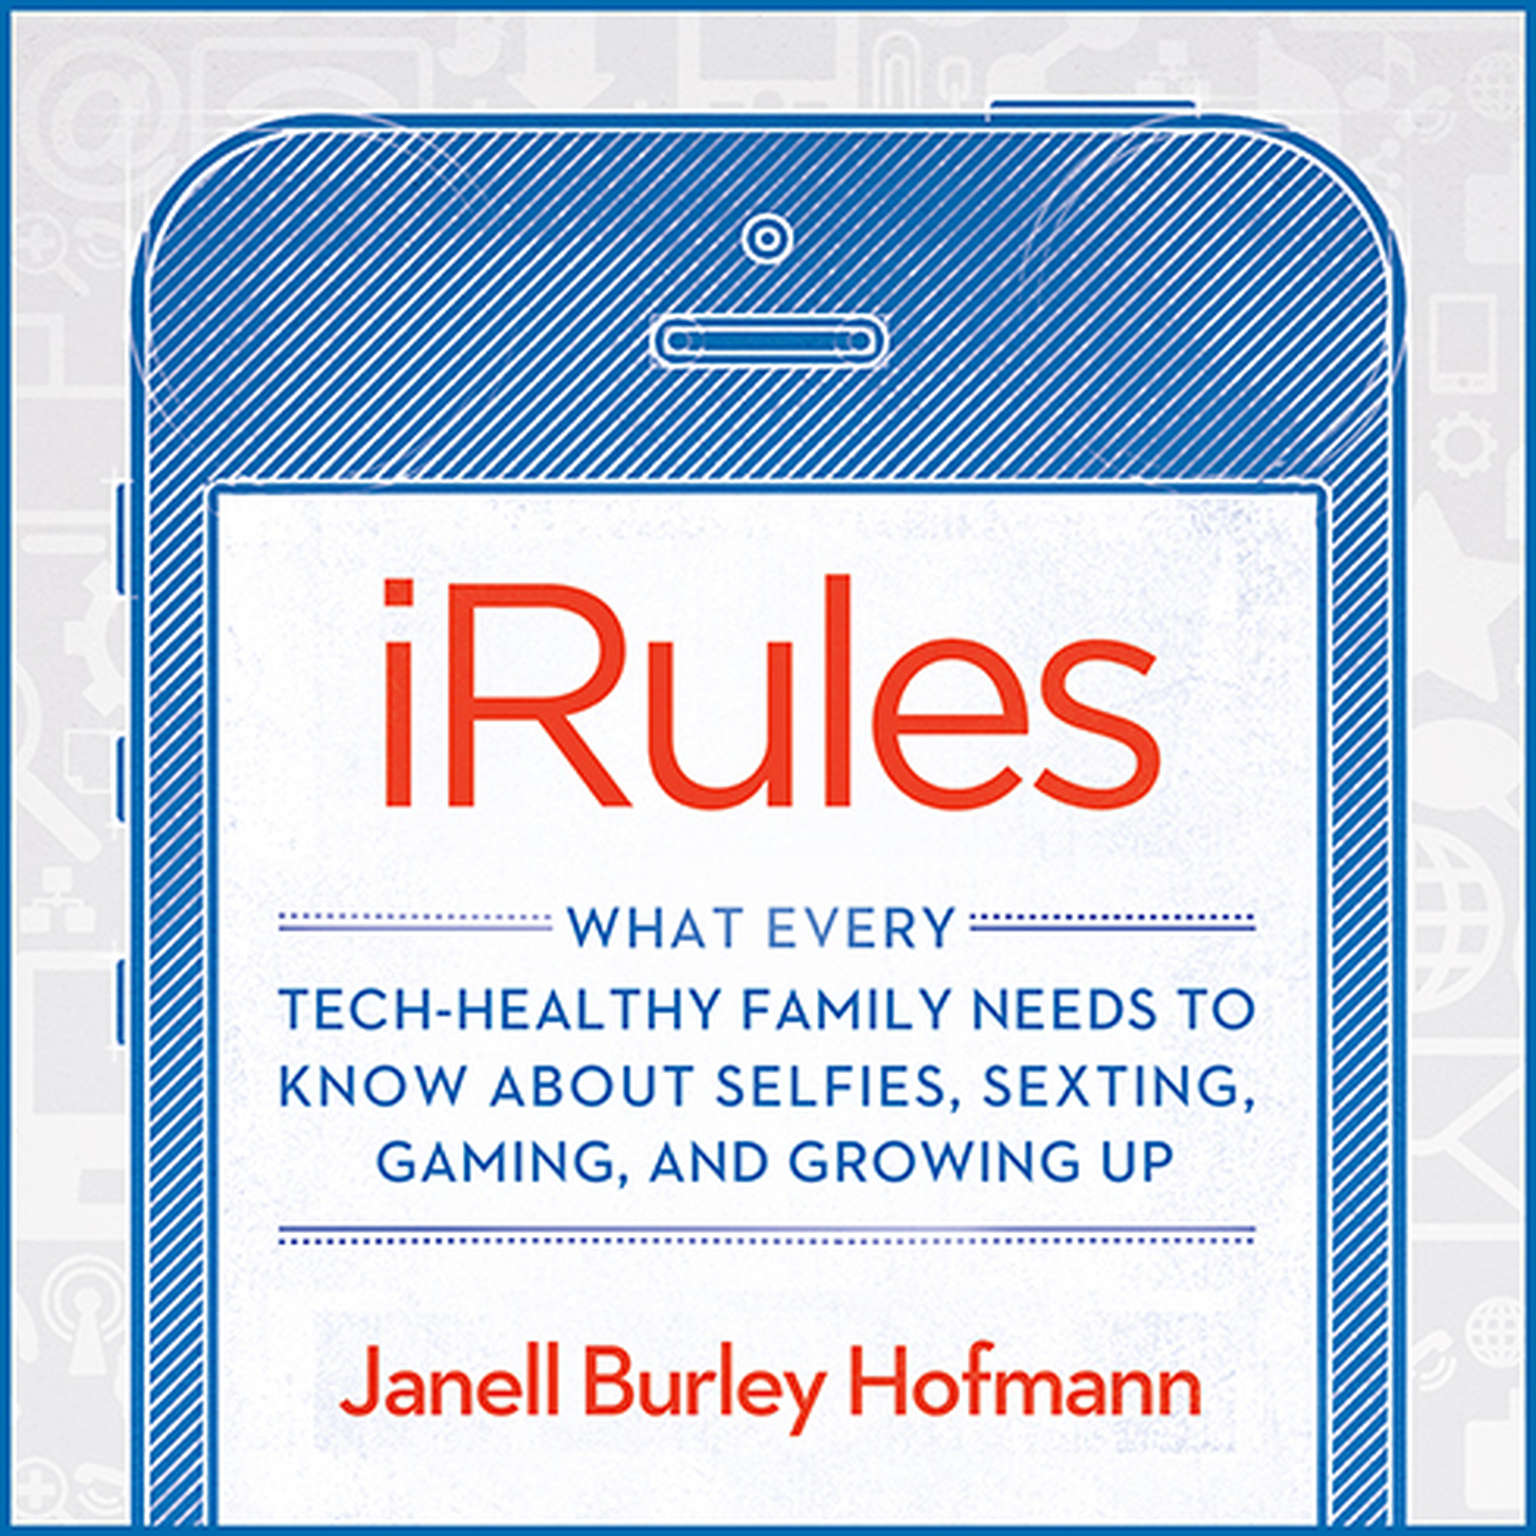 Printable iRules: What Every Tech-healthy Family Needs to Know About Selfies, Sexting, Gaming, and Growing Up Audiobook Cover Art